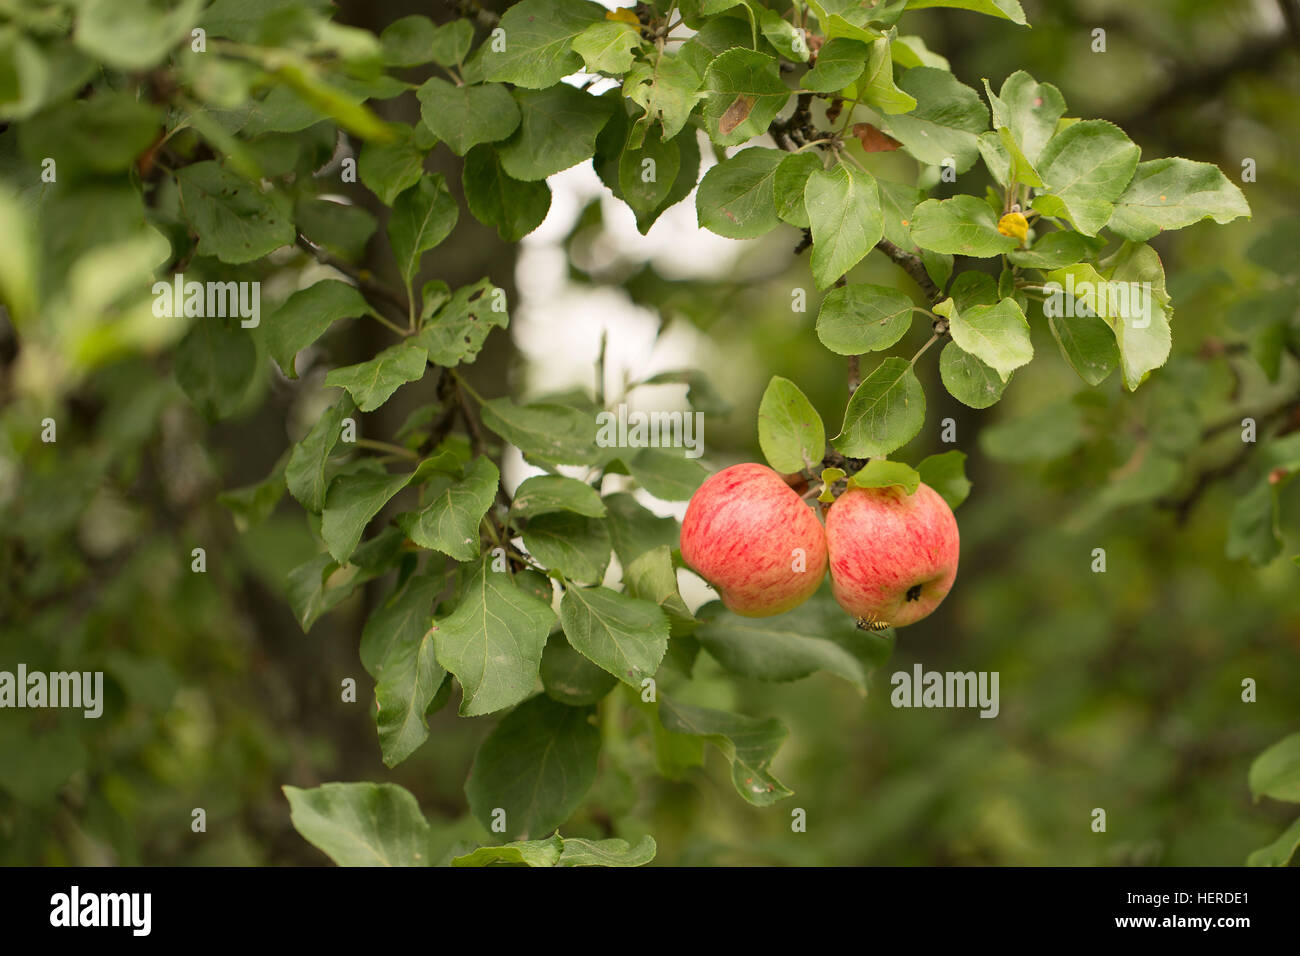 2 apples,2 objects,4-season autumn,agriculture,apple tree,apple tree branch,autumn,bright,close-up apples,closeup,colorful,delicious,dessert,diet,food,four - Stock Image